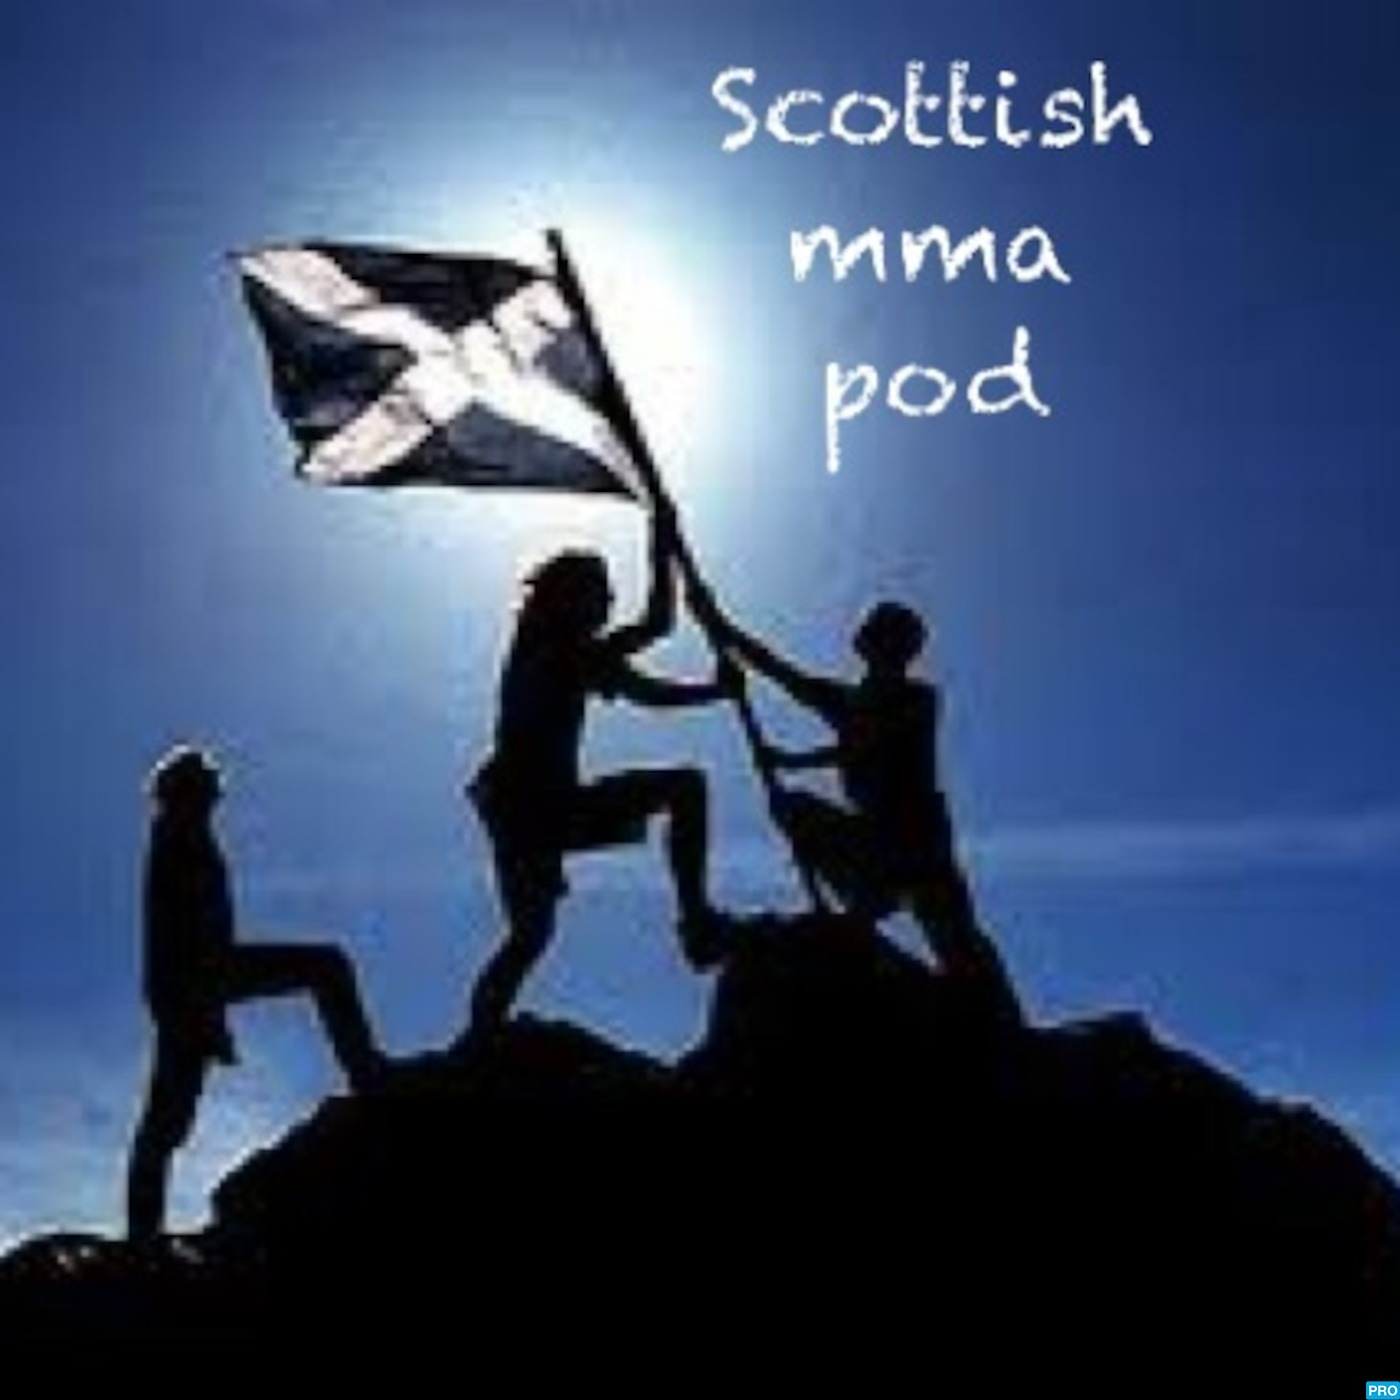 Scottish mma pod